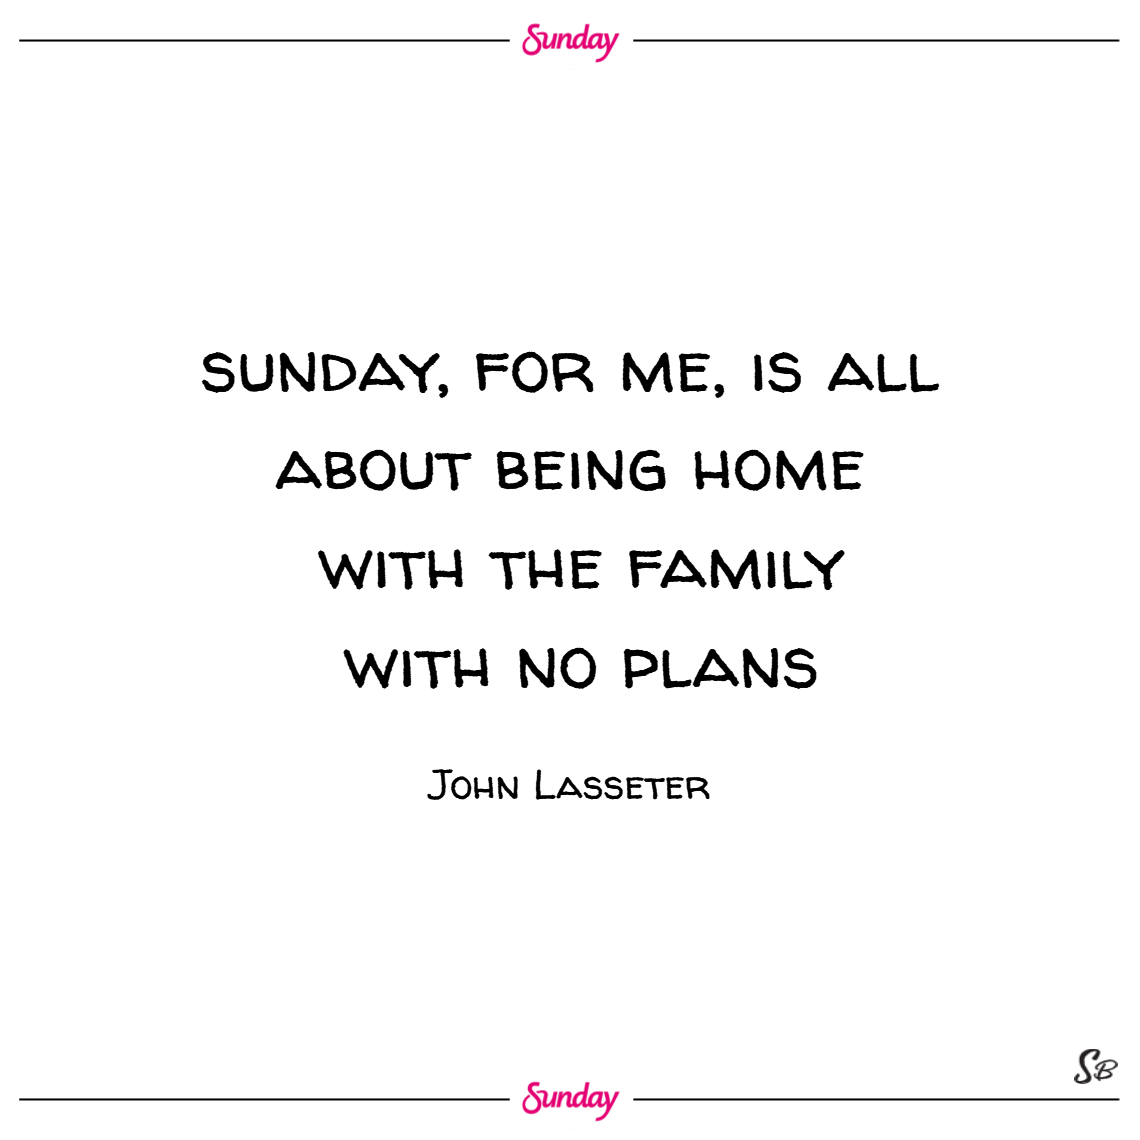 Sunday, for me, is all about being home with the family with no plans. – john lasseter